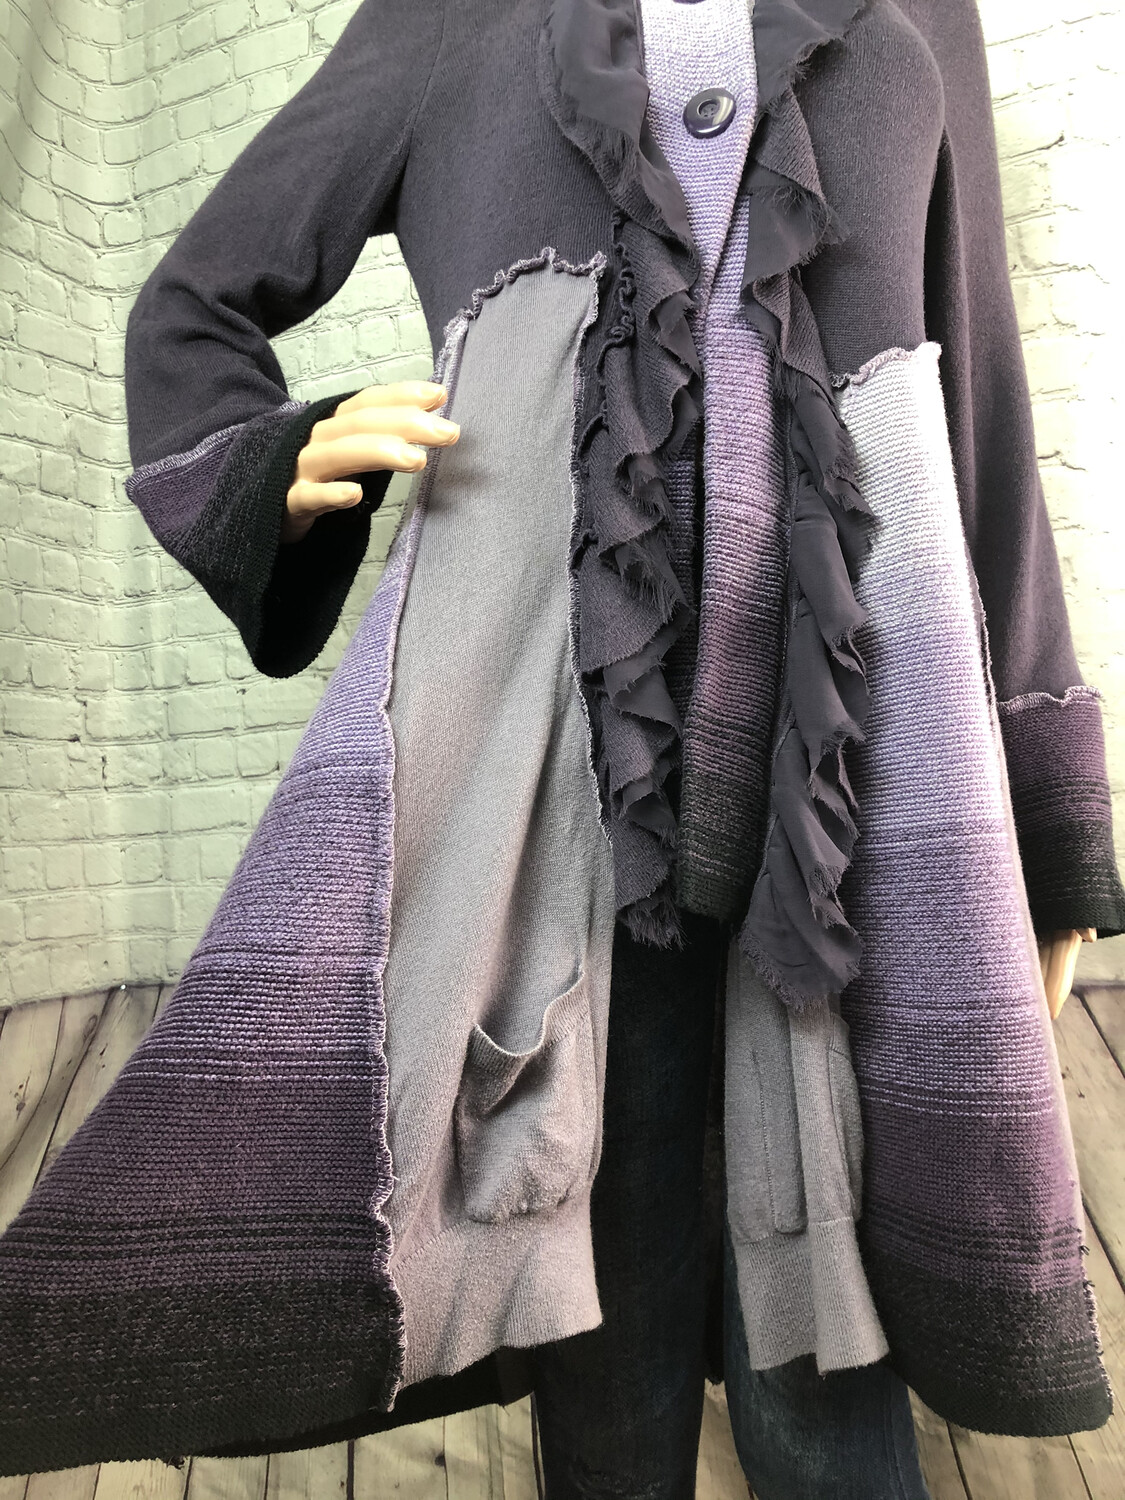 S Threads Upcycled Wearable Art Lavendar Sweater Coat Katwise Inspired Panels Recreated Recycled Size Medium Large